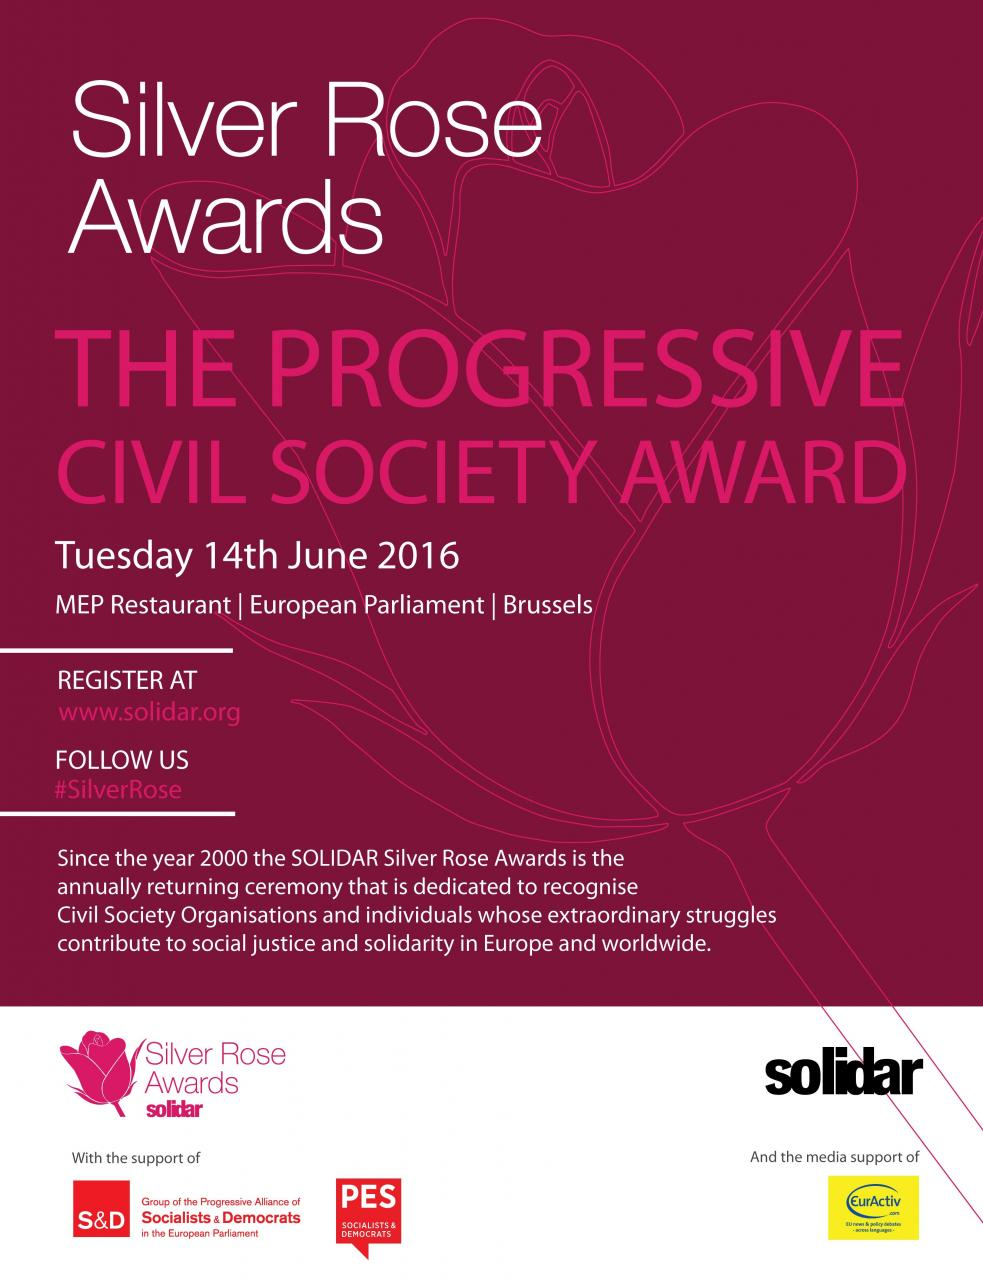 Silver Rose Awards: The Progressive Civil Society Award